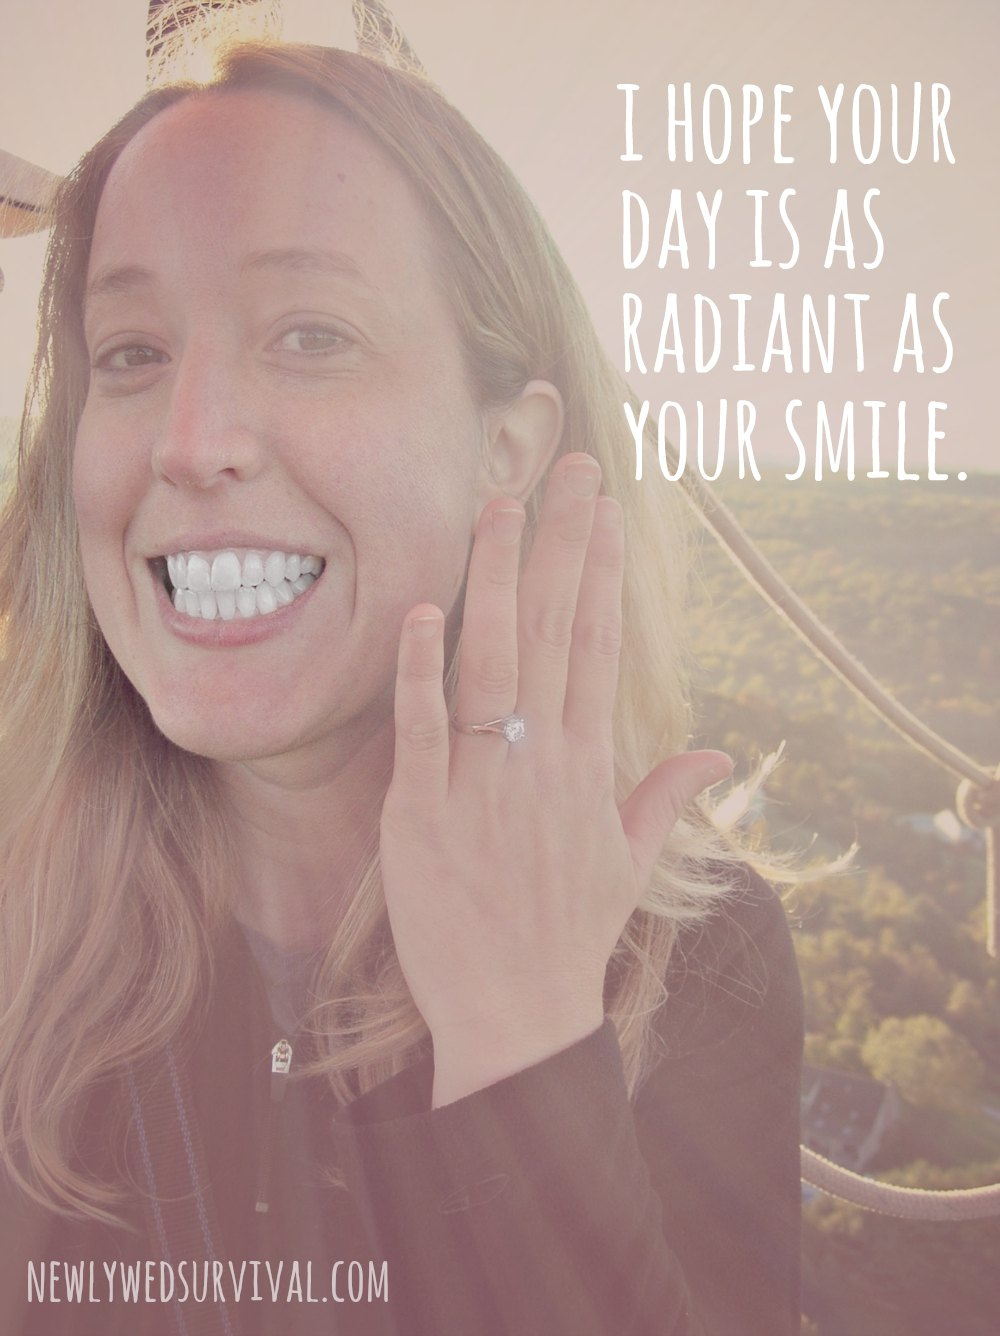 I hope your day is as radiant as your smile. #TrulyRadiantFinish